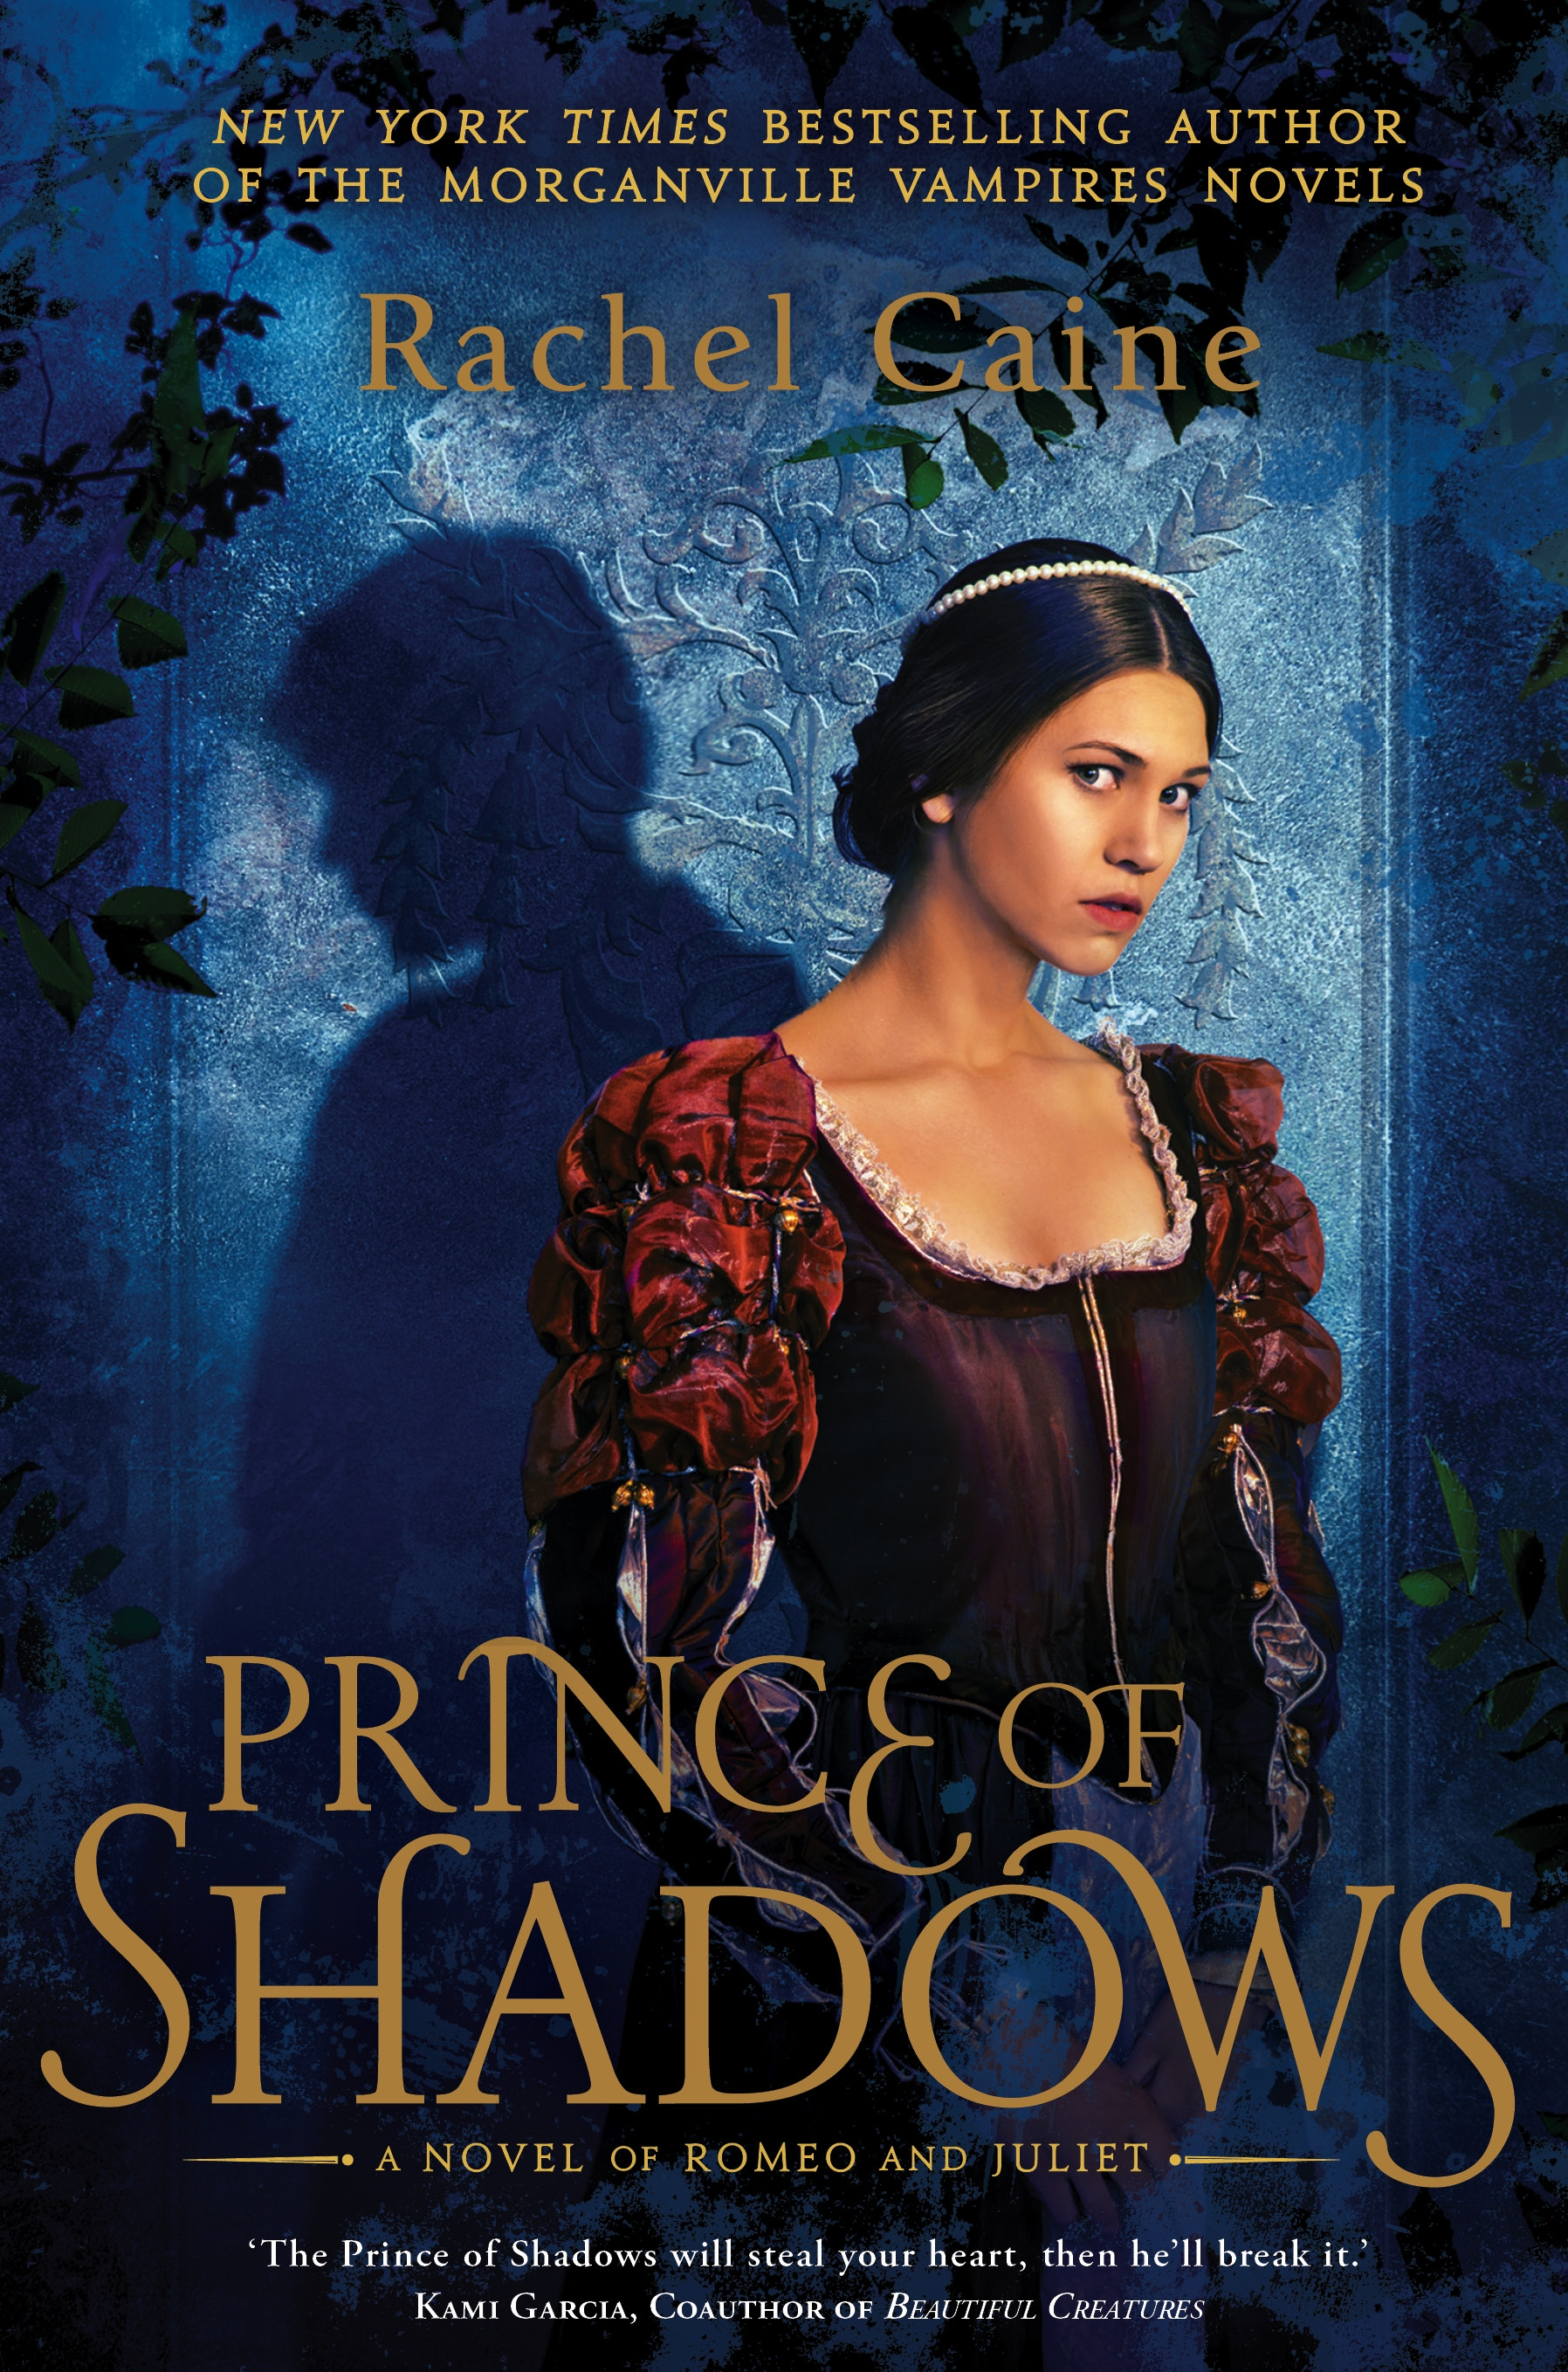 Image result for the prince of shadows rachel caine book cover